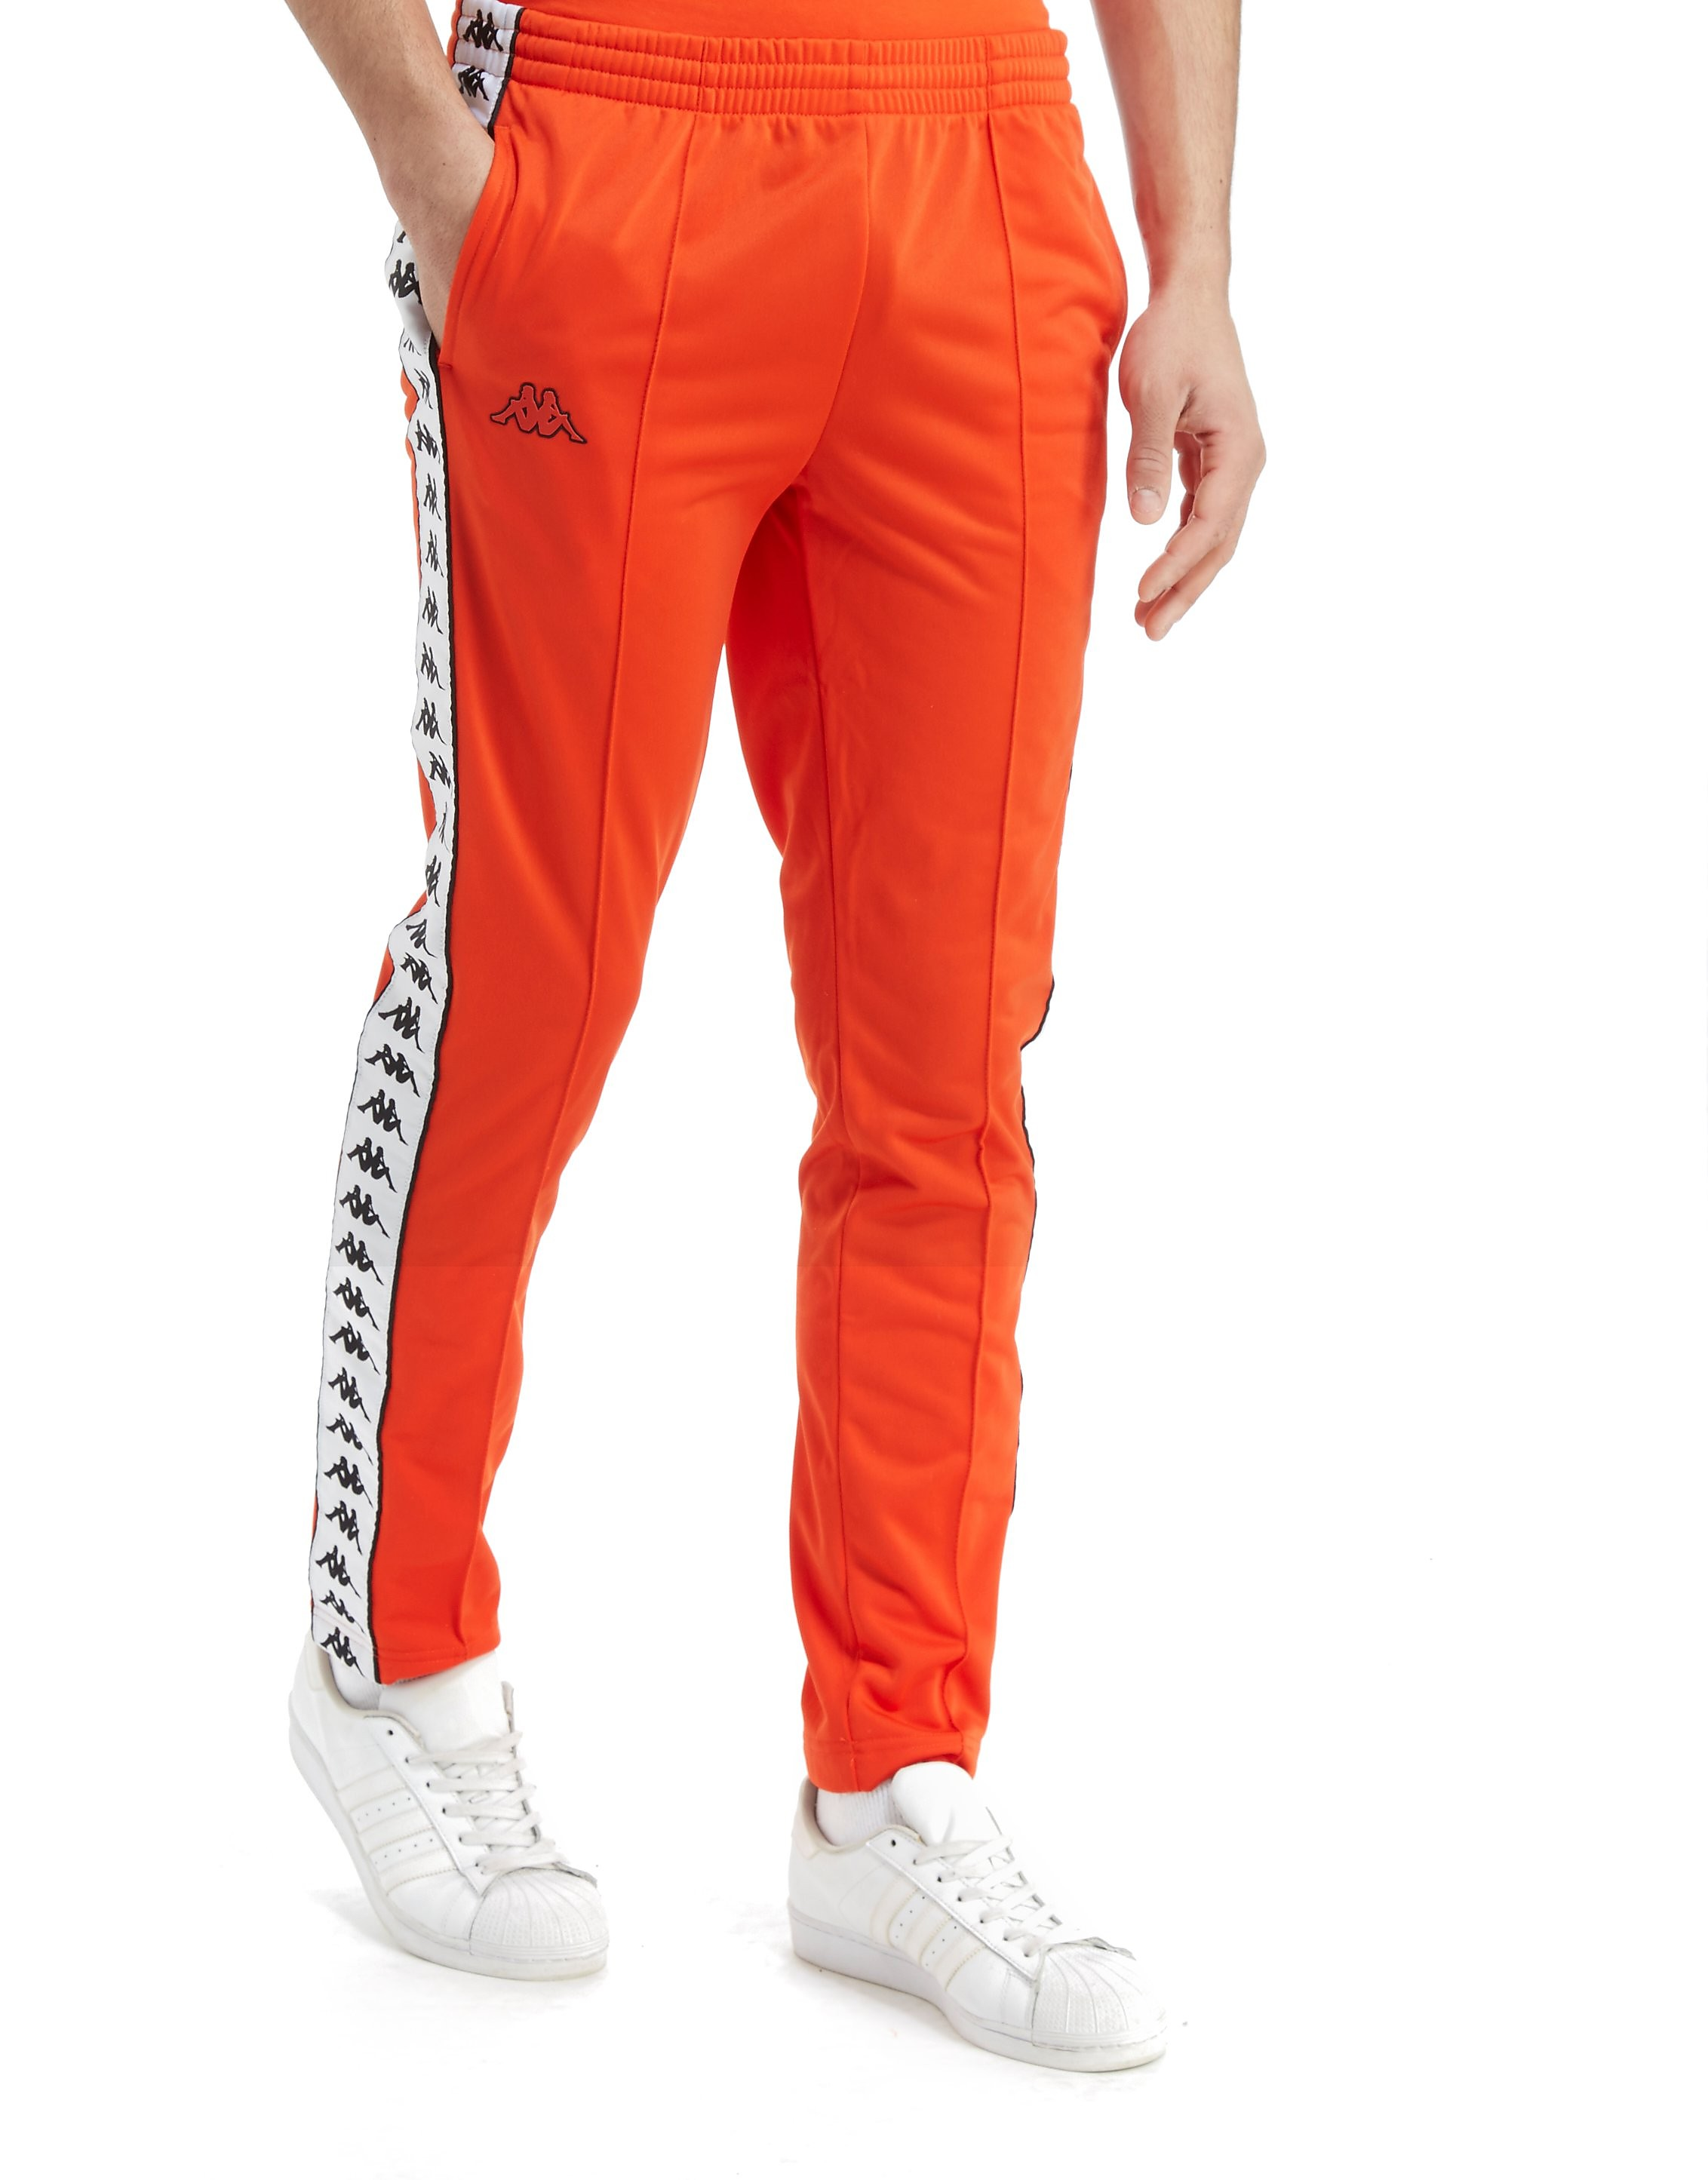 Kappa Astoria Slim Pants